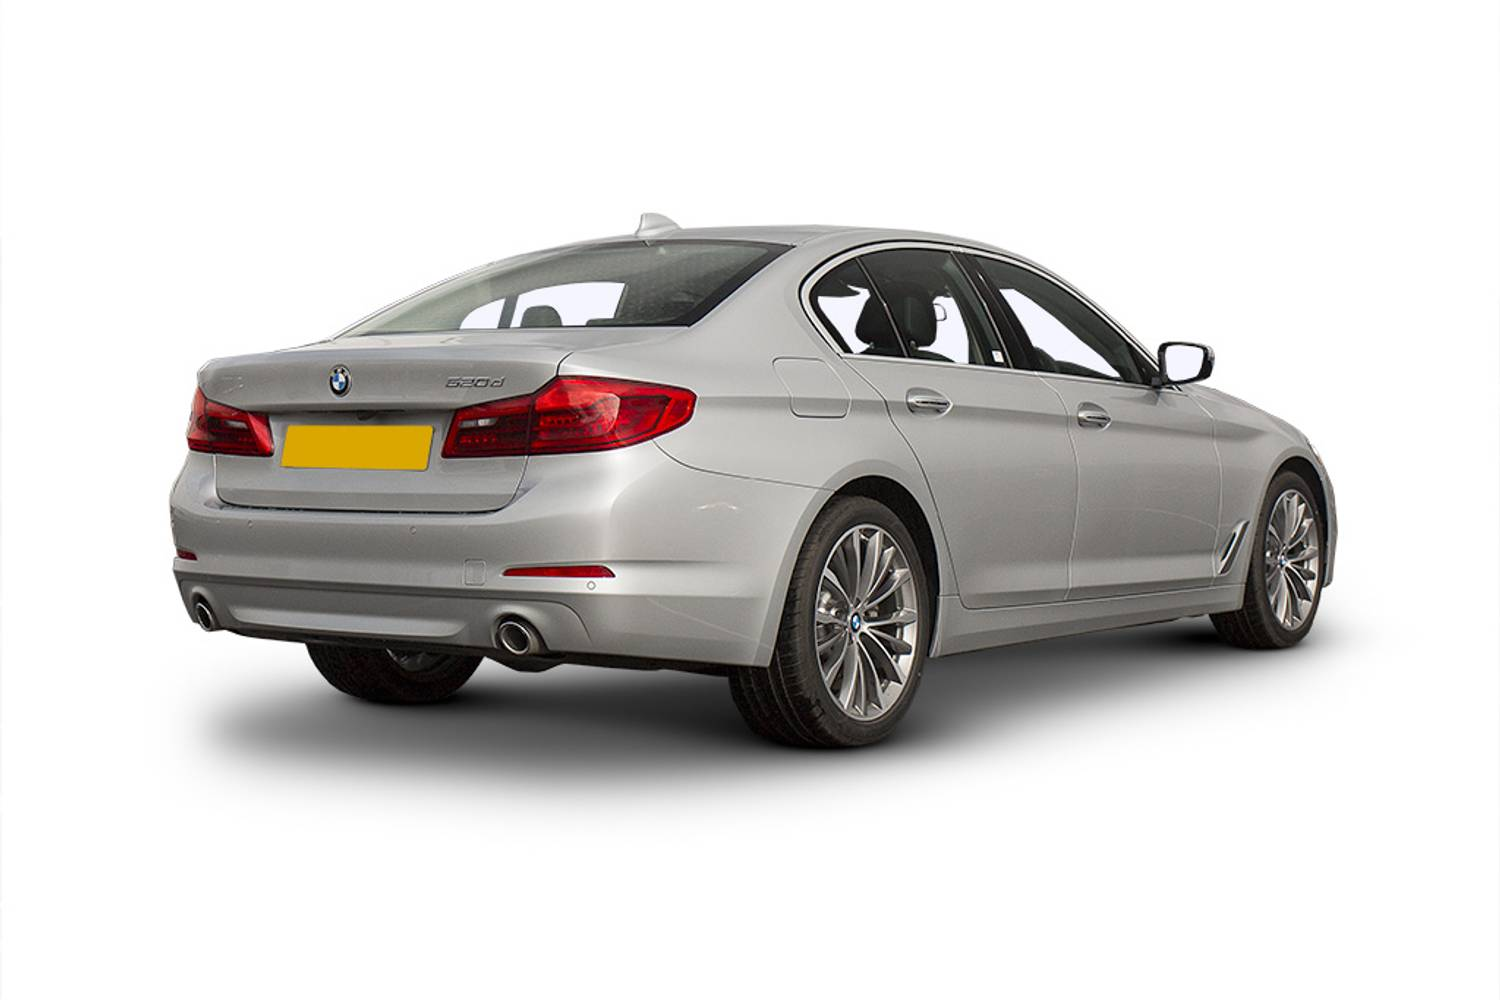 BMW 5 Series Saloon 4dr Rear Three Quarter